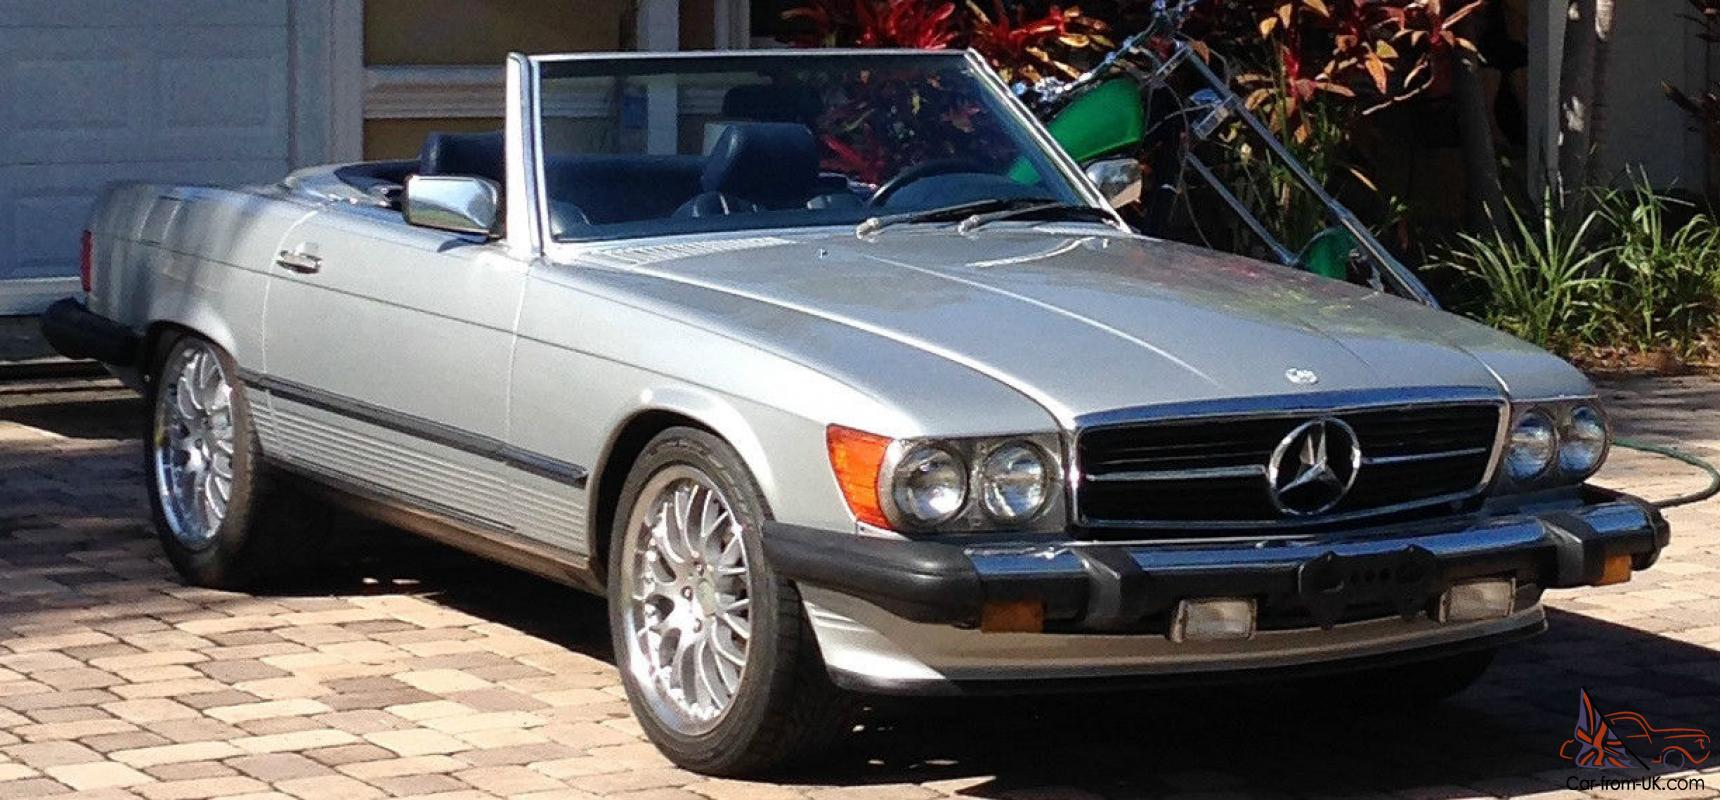 1987 MERCEDES 560SL EXCELLENT CONDITION REAL CLASSIC